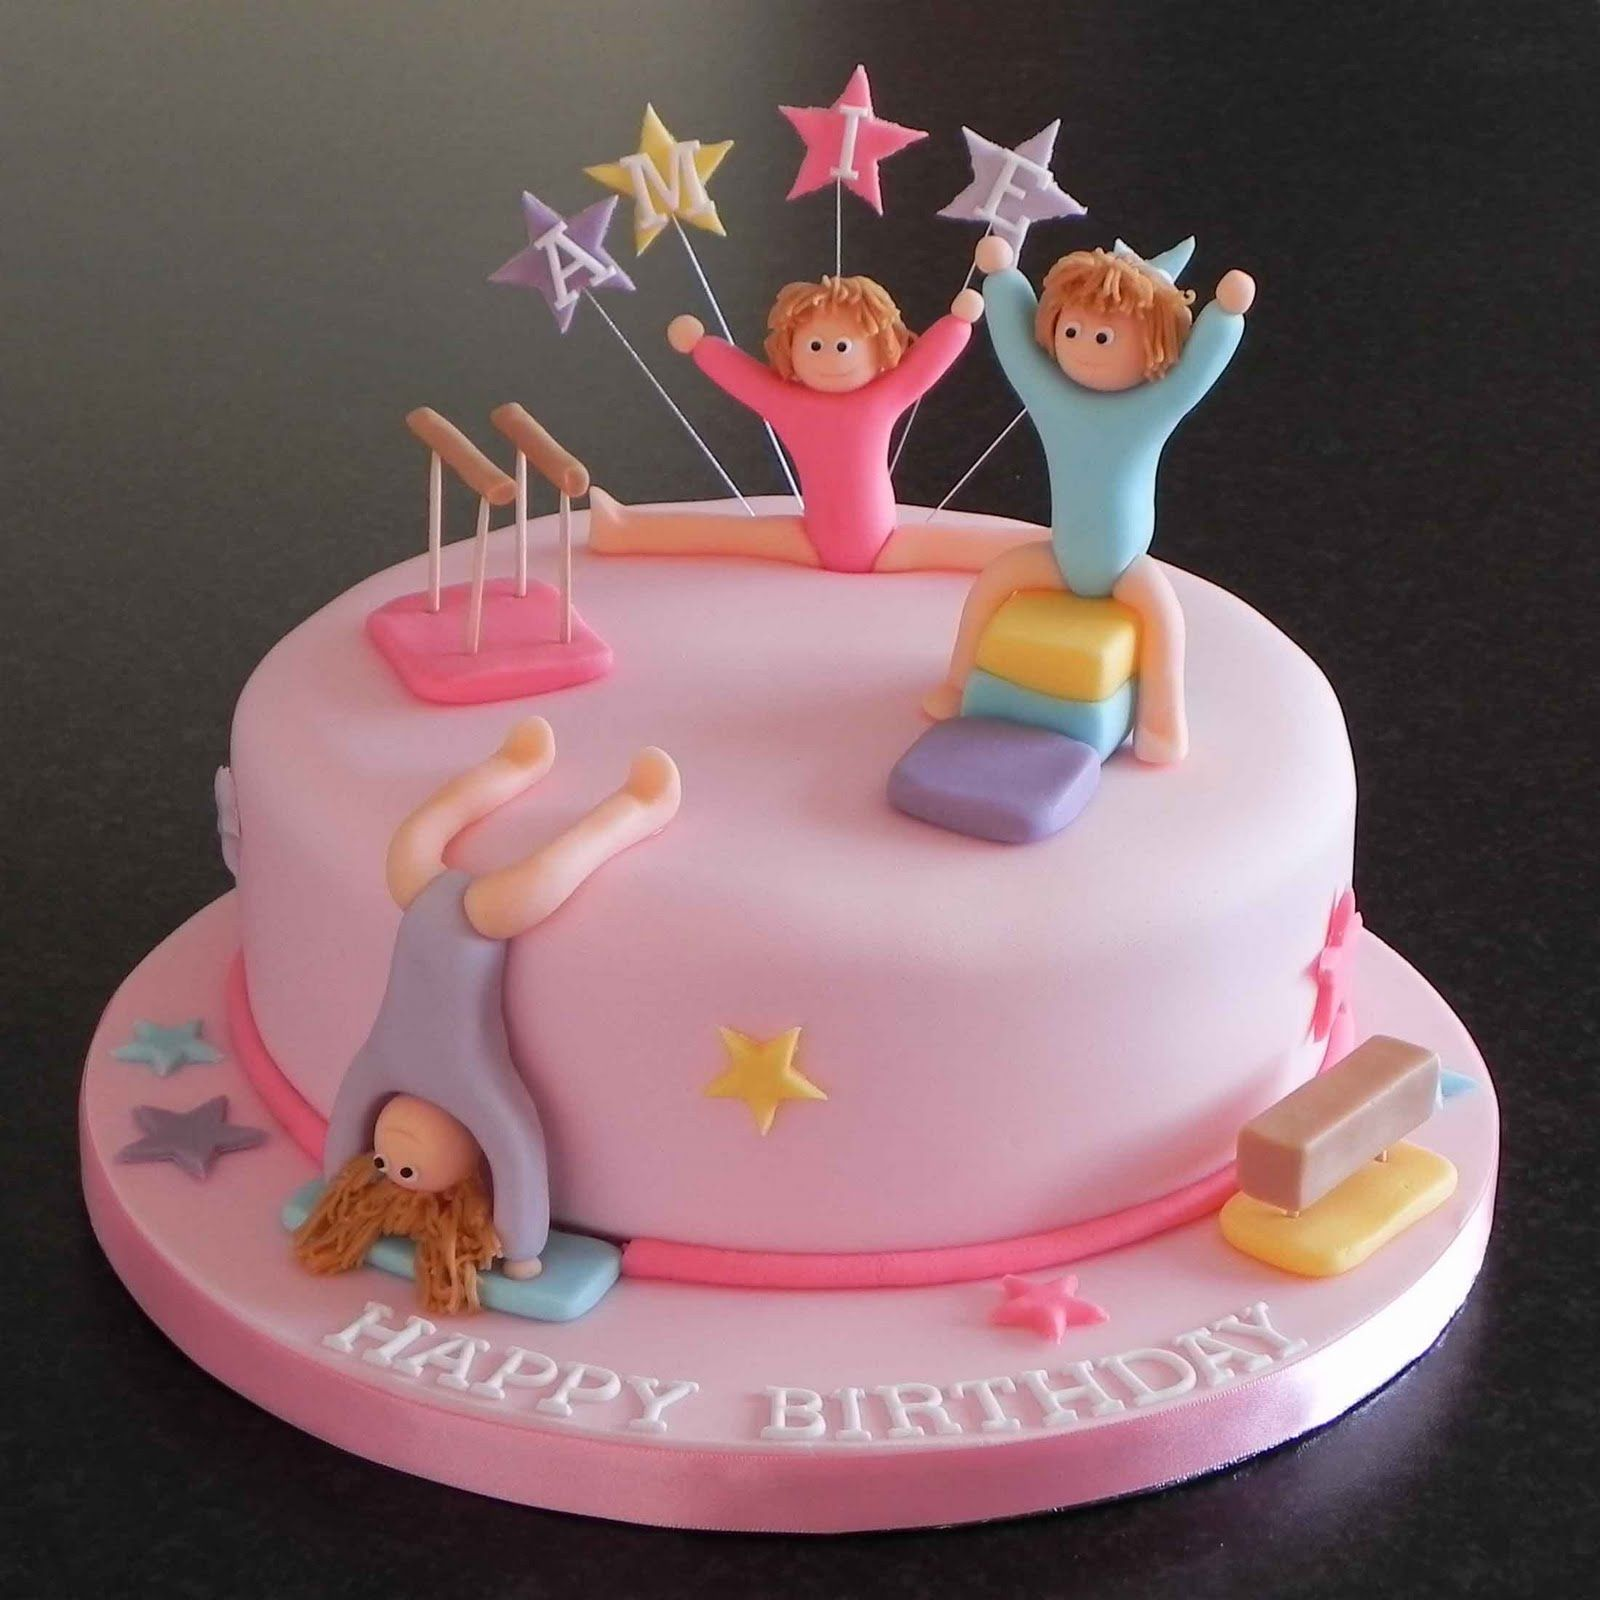 Stupendous Gymnastic Themed Birthday Cake Is It Not Adorable Gymnastics Personalised Birthday Cards Bromeletsinfo